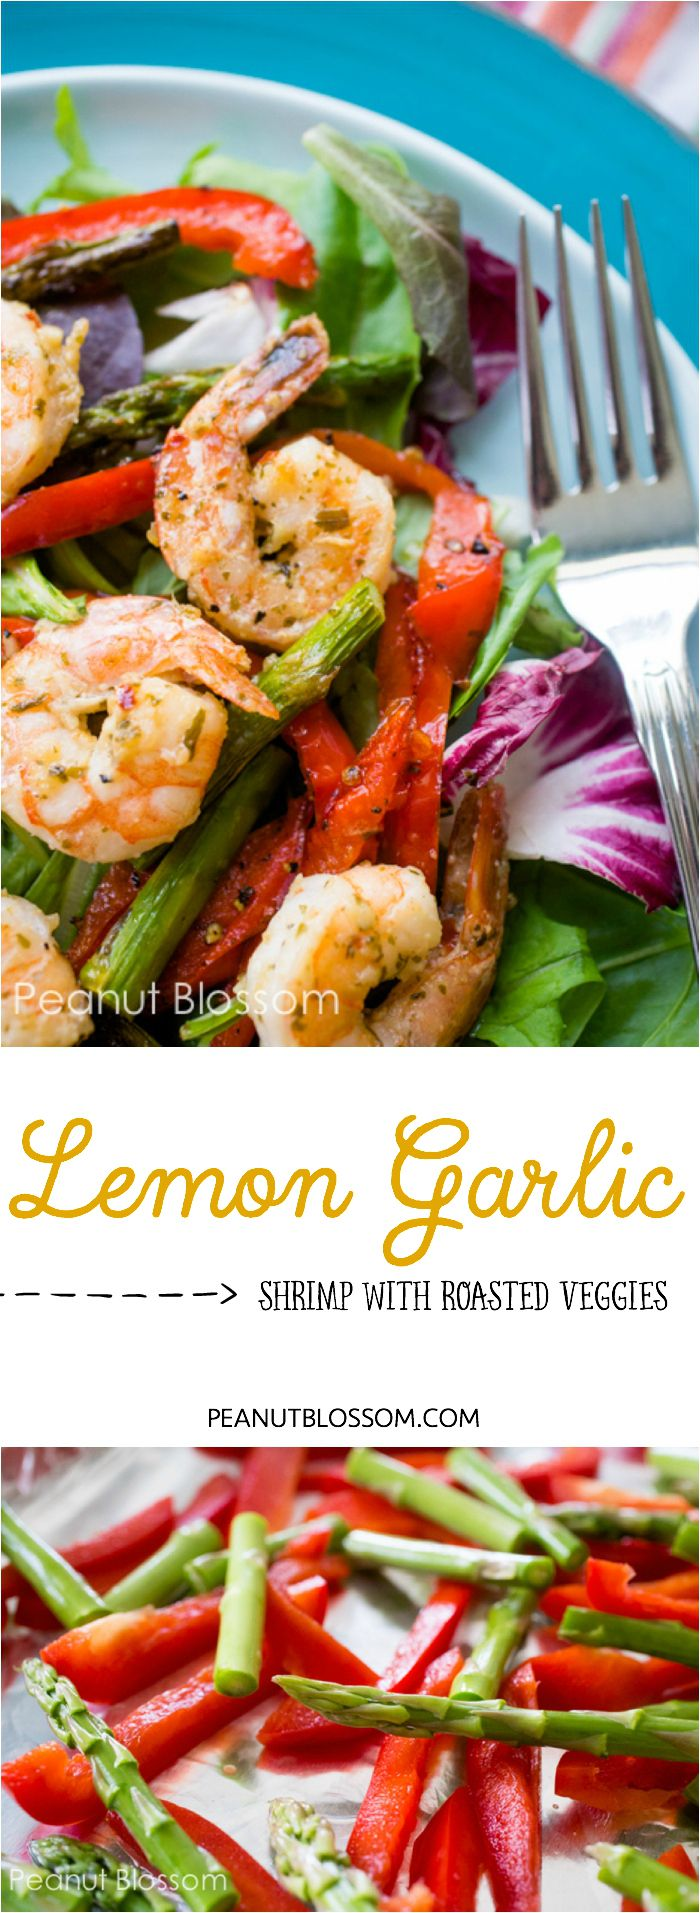 Lemon garlic shrimp with roasted peppers and asparagus salad. Perfect